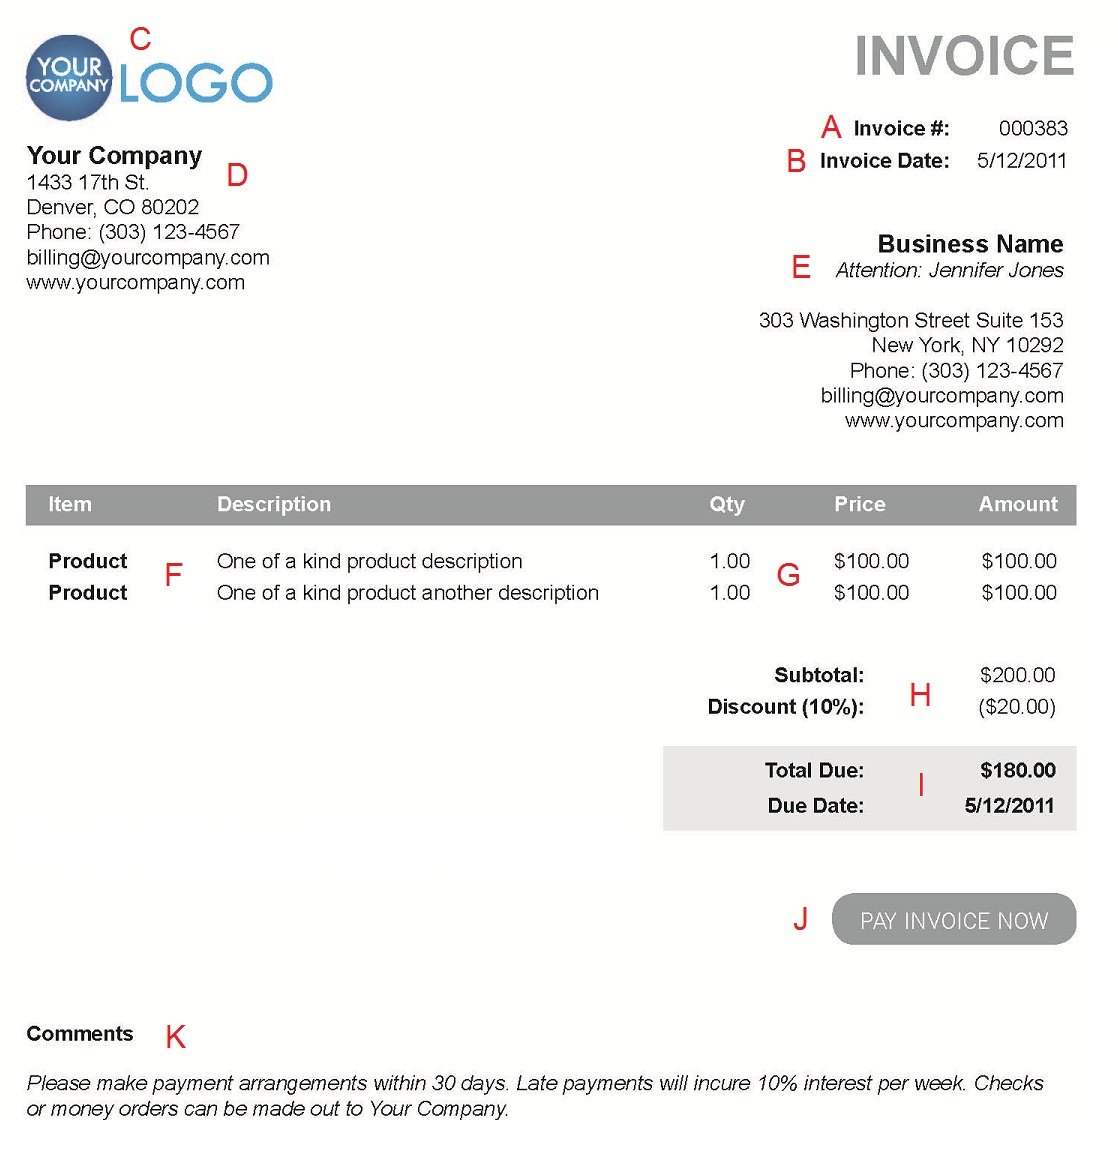 Coachoutletonlineplusus  Fascinating The  Different Sections Of An Electronic Payment Invoice With Fair A  With Beauteous Professional Invoice Template Word Also Hvac Invoice Forms In Addition Invoice Factoring Services And Invoice Numbering As Well As Production Assistant Invoice Additionally Wordpress Invoice Plugin From Paysimplecom With Coachoutletonlineplusus  Fair The  Different Sections Of An Electronic Payment Invoice With Beauteous A  And Fascinating Professional Invoice Template Word Also Hvac Invoice Forms In Addition Invoice Factoring Services From Paysimplecom